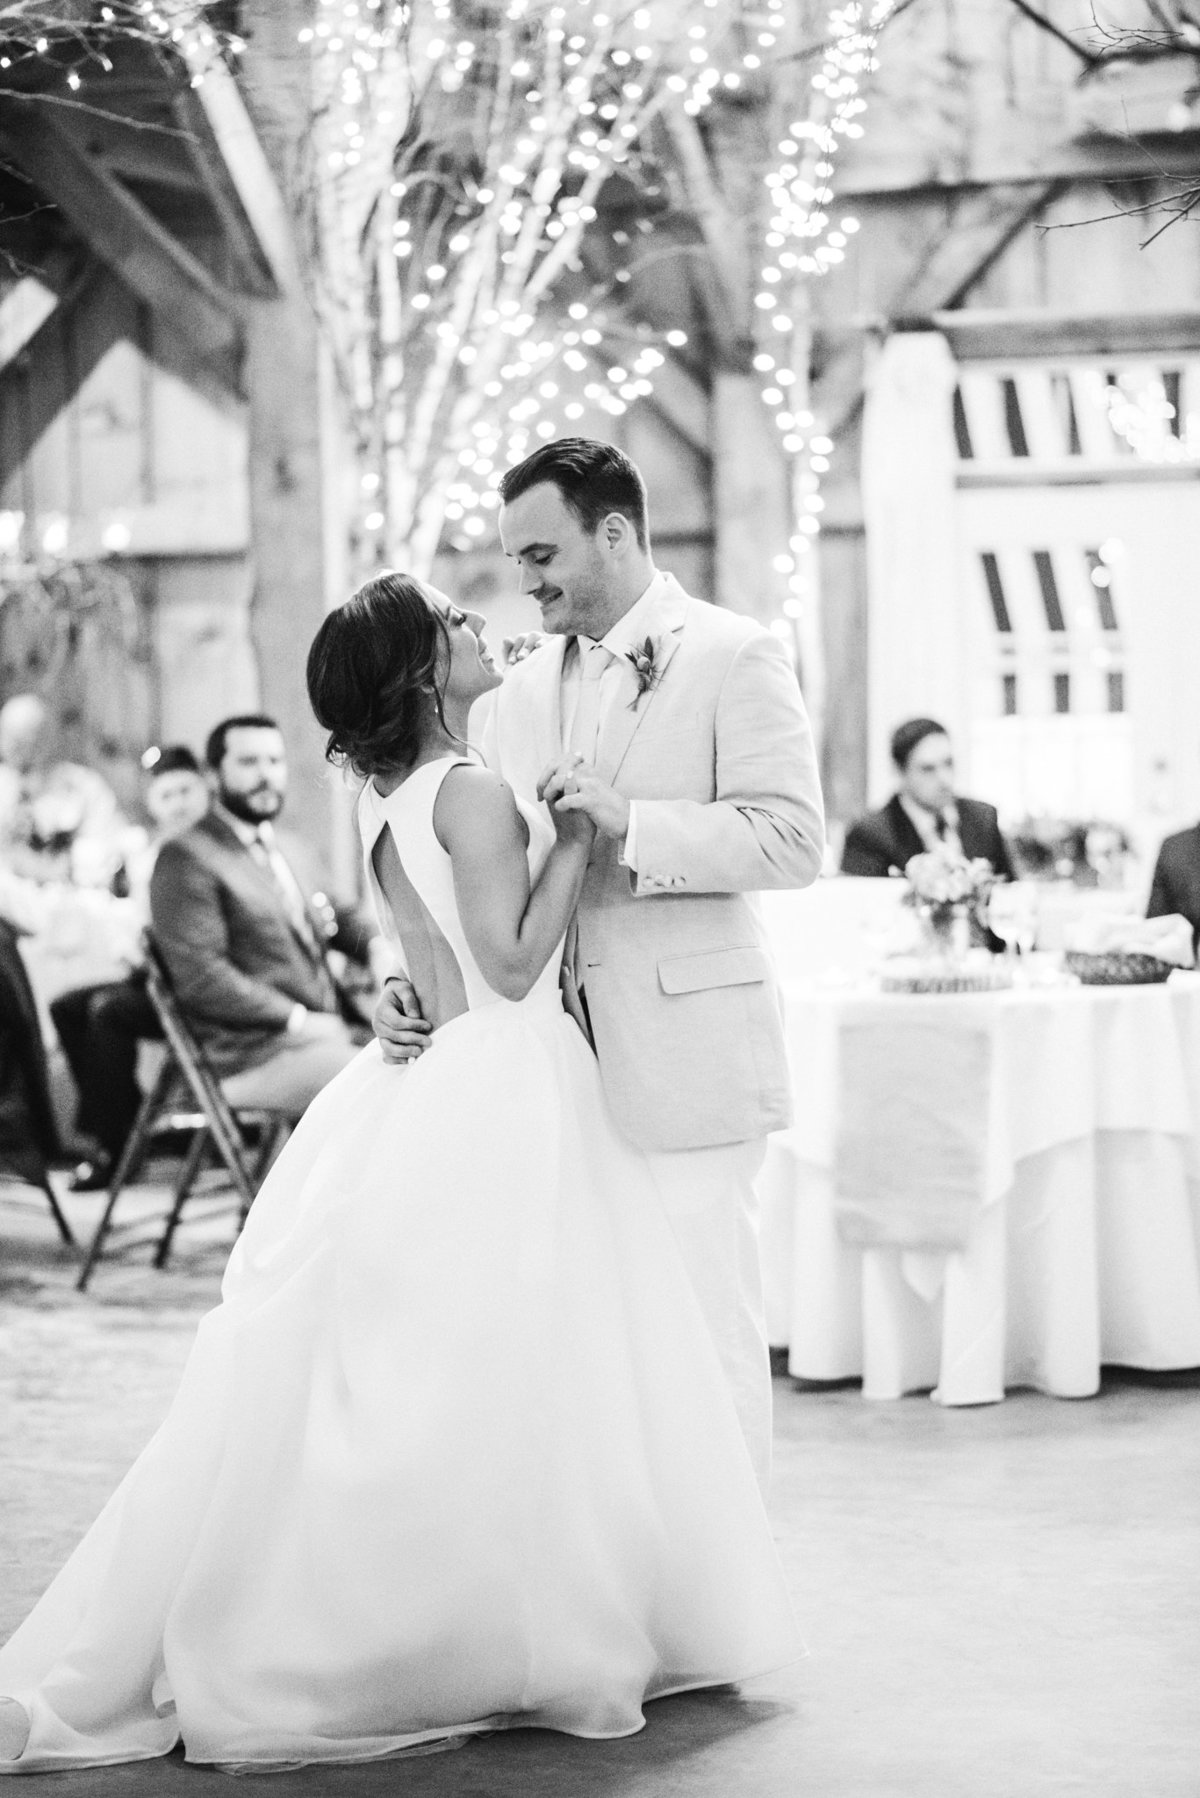 bride and groom first dance, black and white photograph